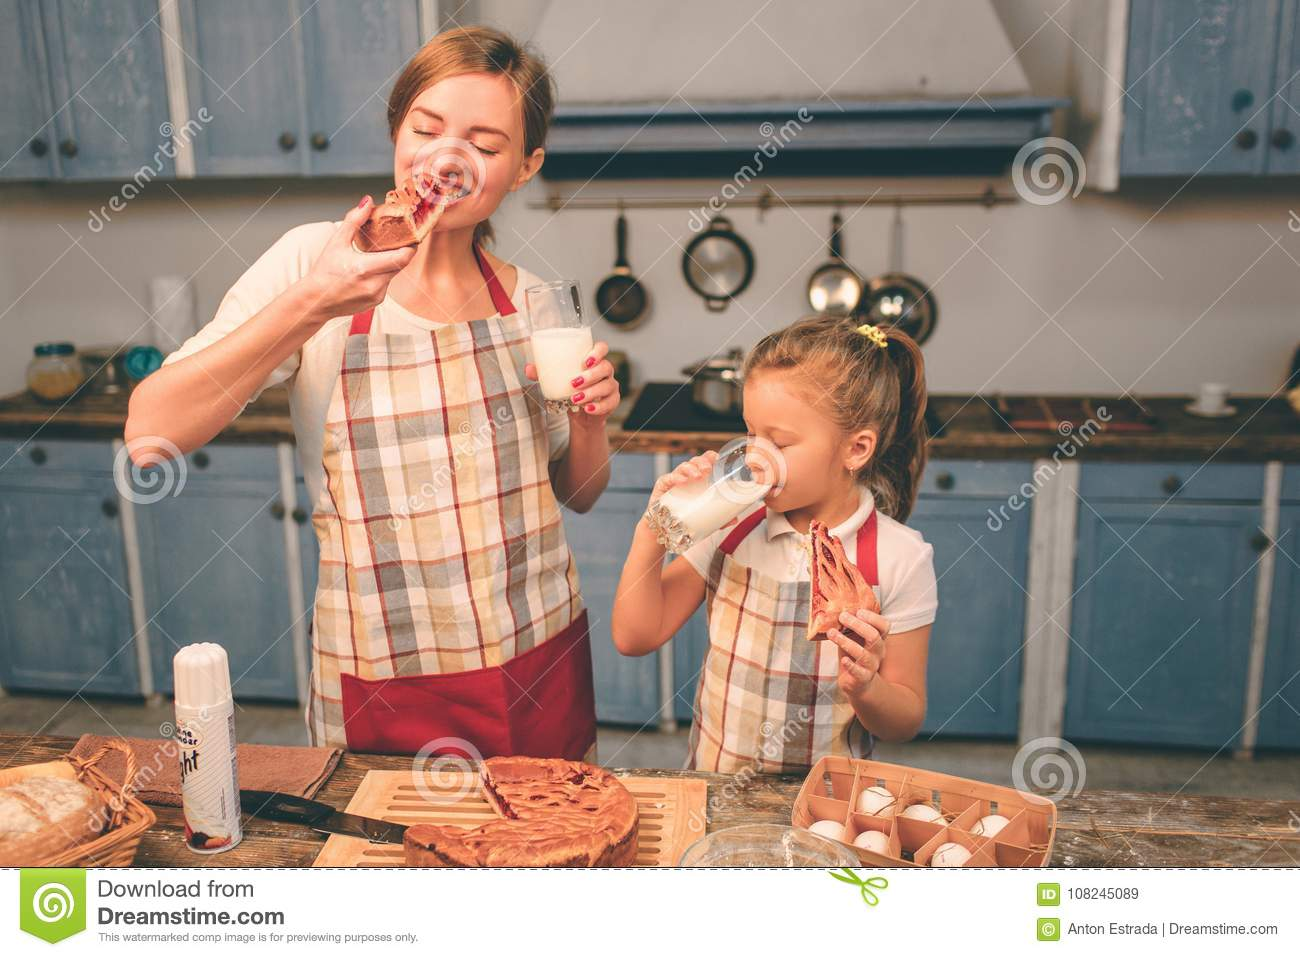 Cooking Homemade Cakes Happy Loving Family Are Preparing Bakery Together Mother And Child Daughter Having Fun In The Kitchen Eat Fresh Cake